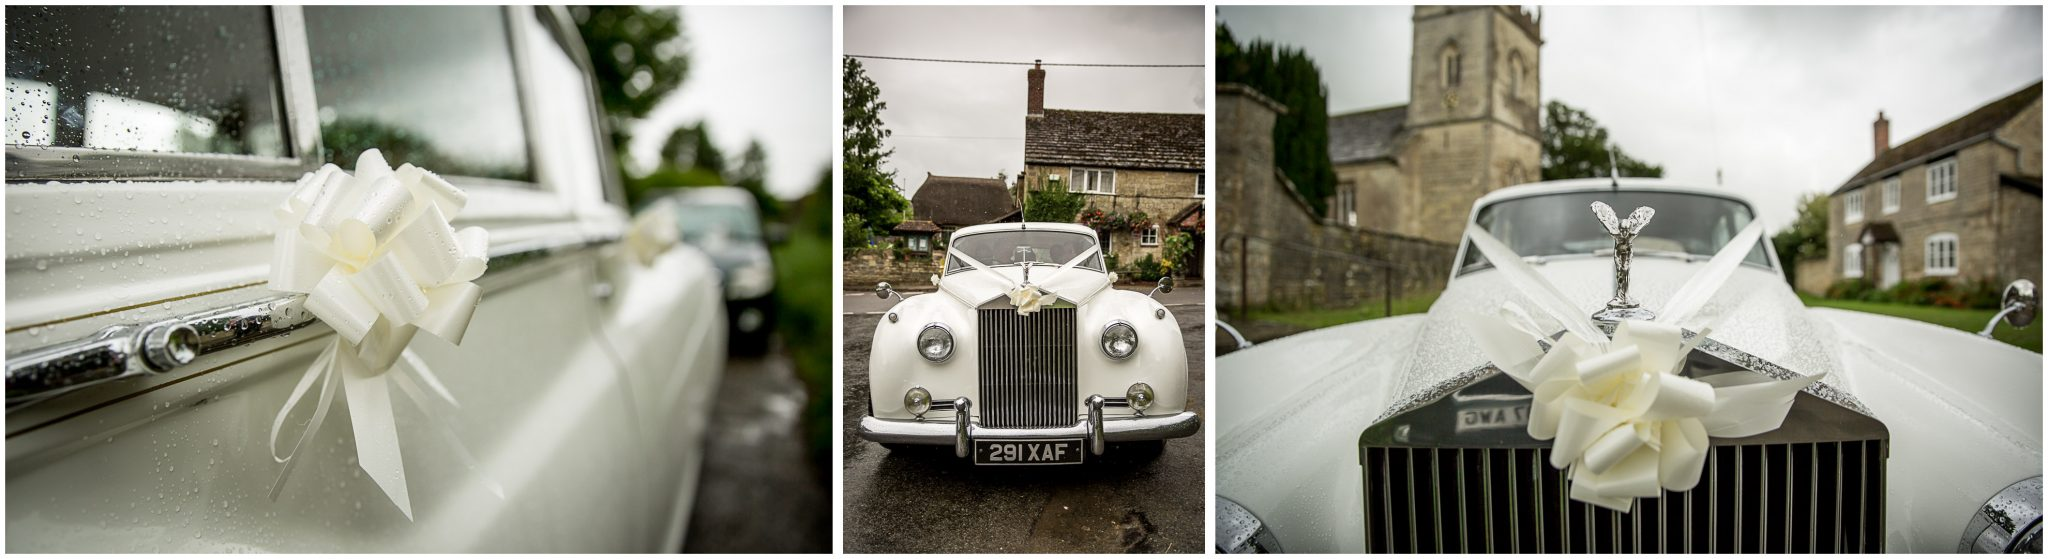 The wedding car arrives outside the church